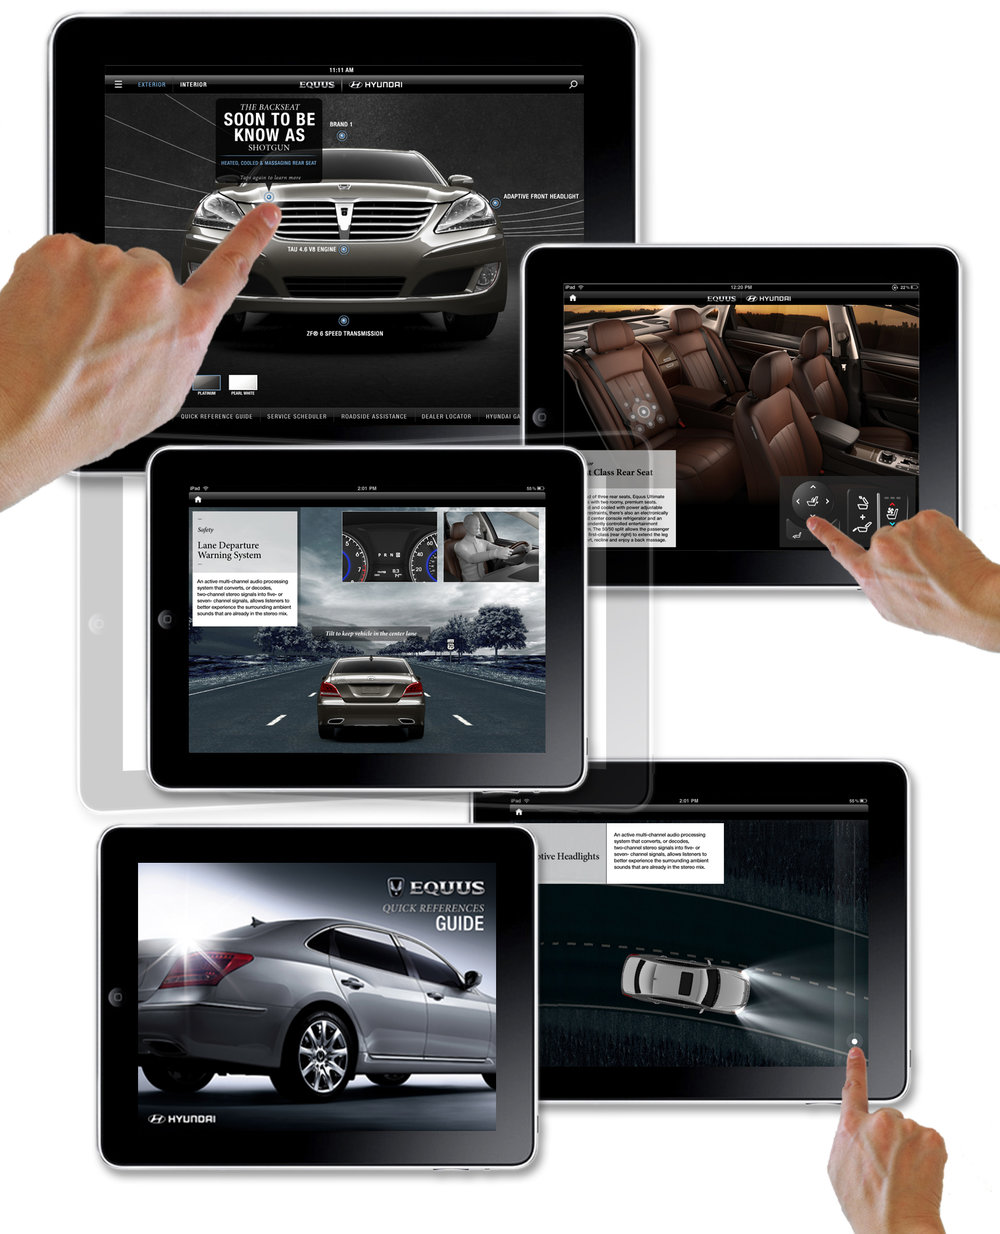 Hyundai Equus iPad Launch